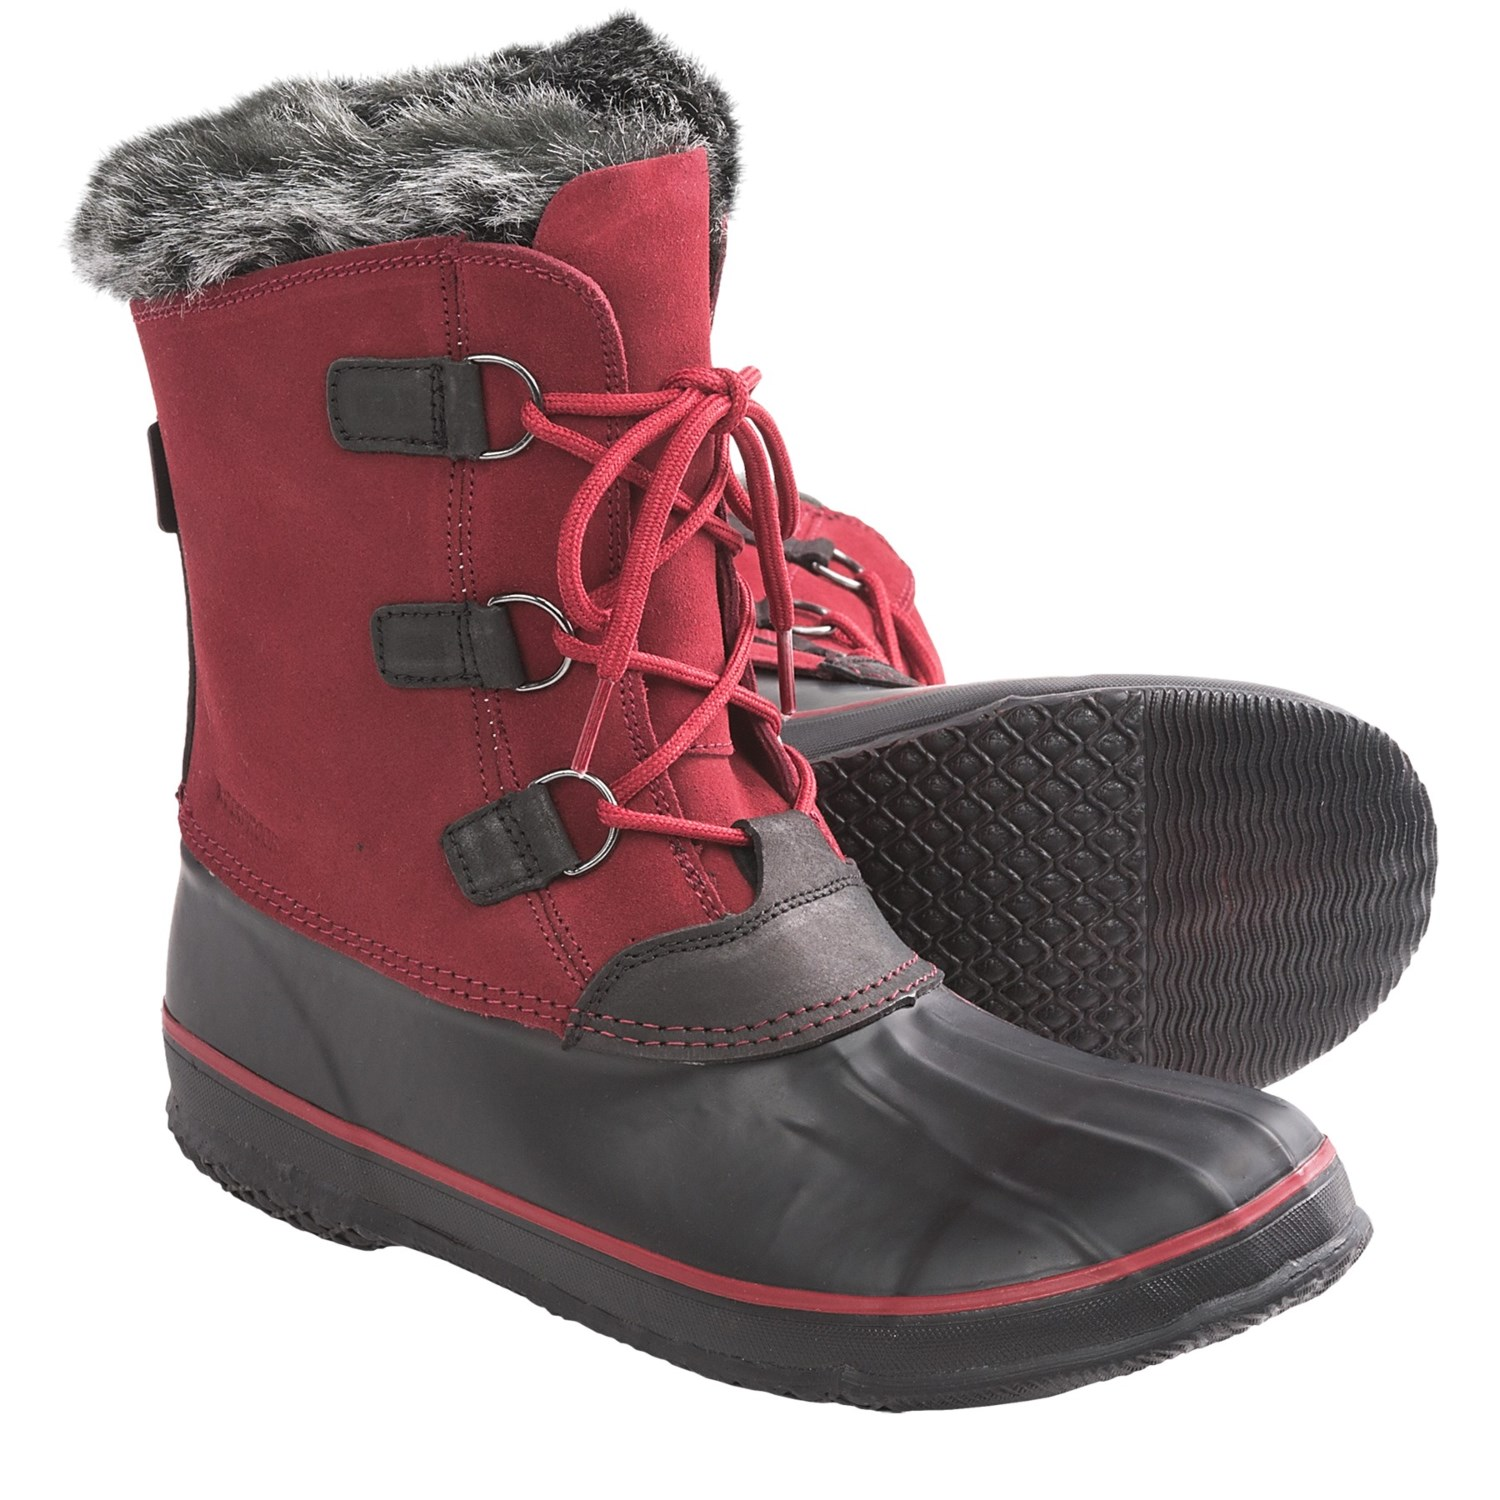 kamik temptress snow boots waterproof insulated for